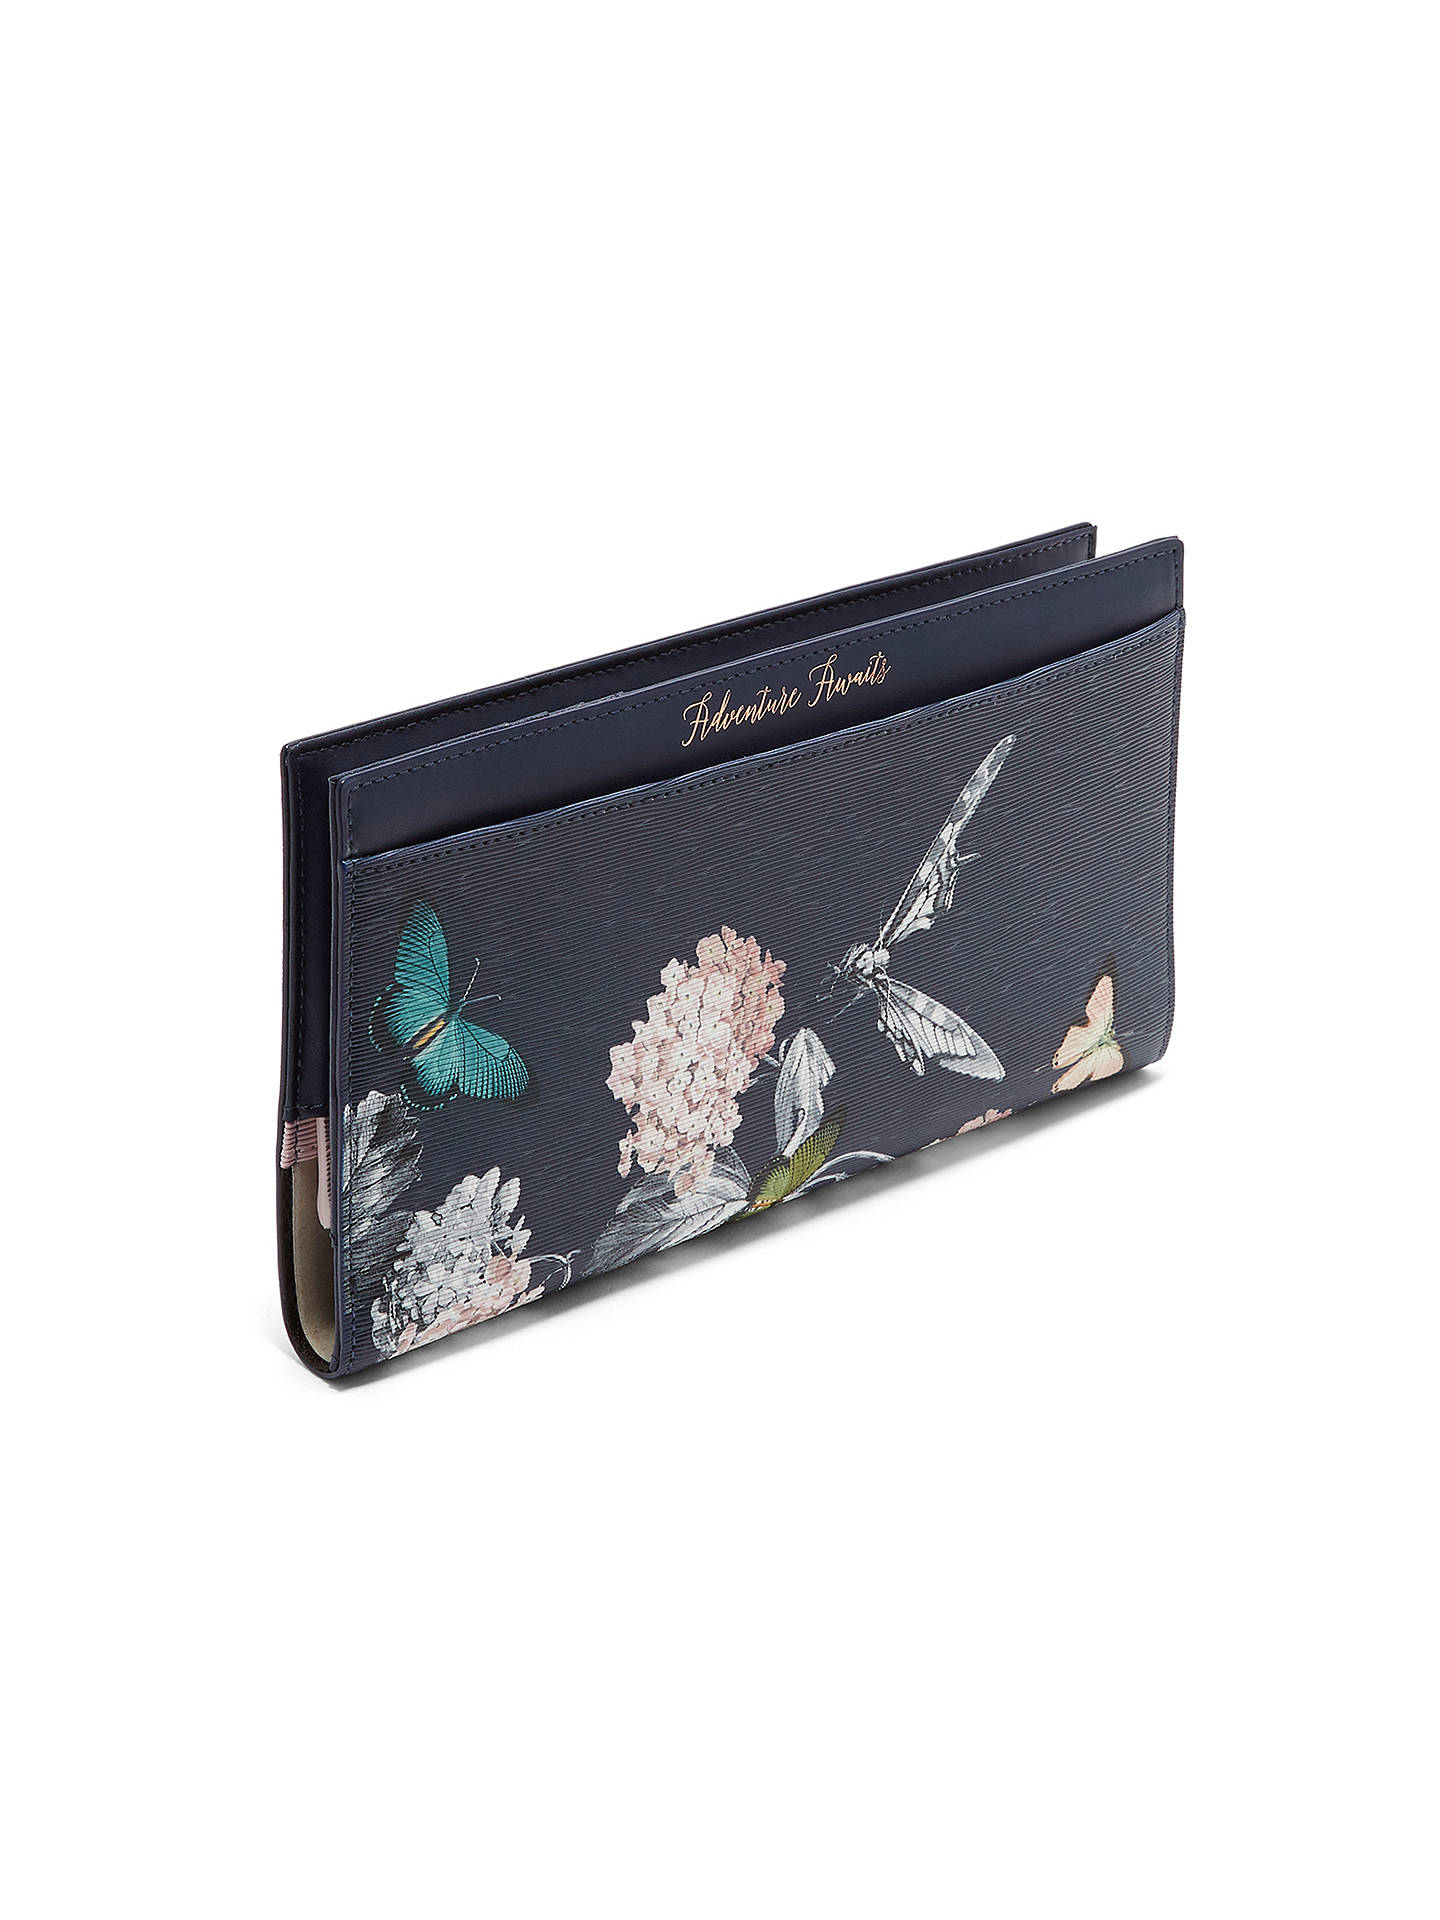 BuyTed Baker Landry Narrnia Leather Travel Wallet & Passport Holder, Blue Online at johnlewis.com